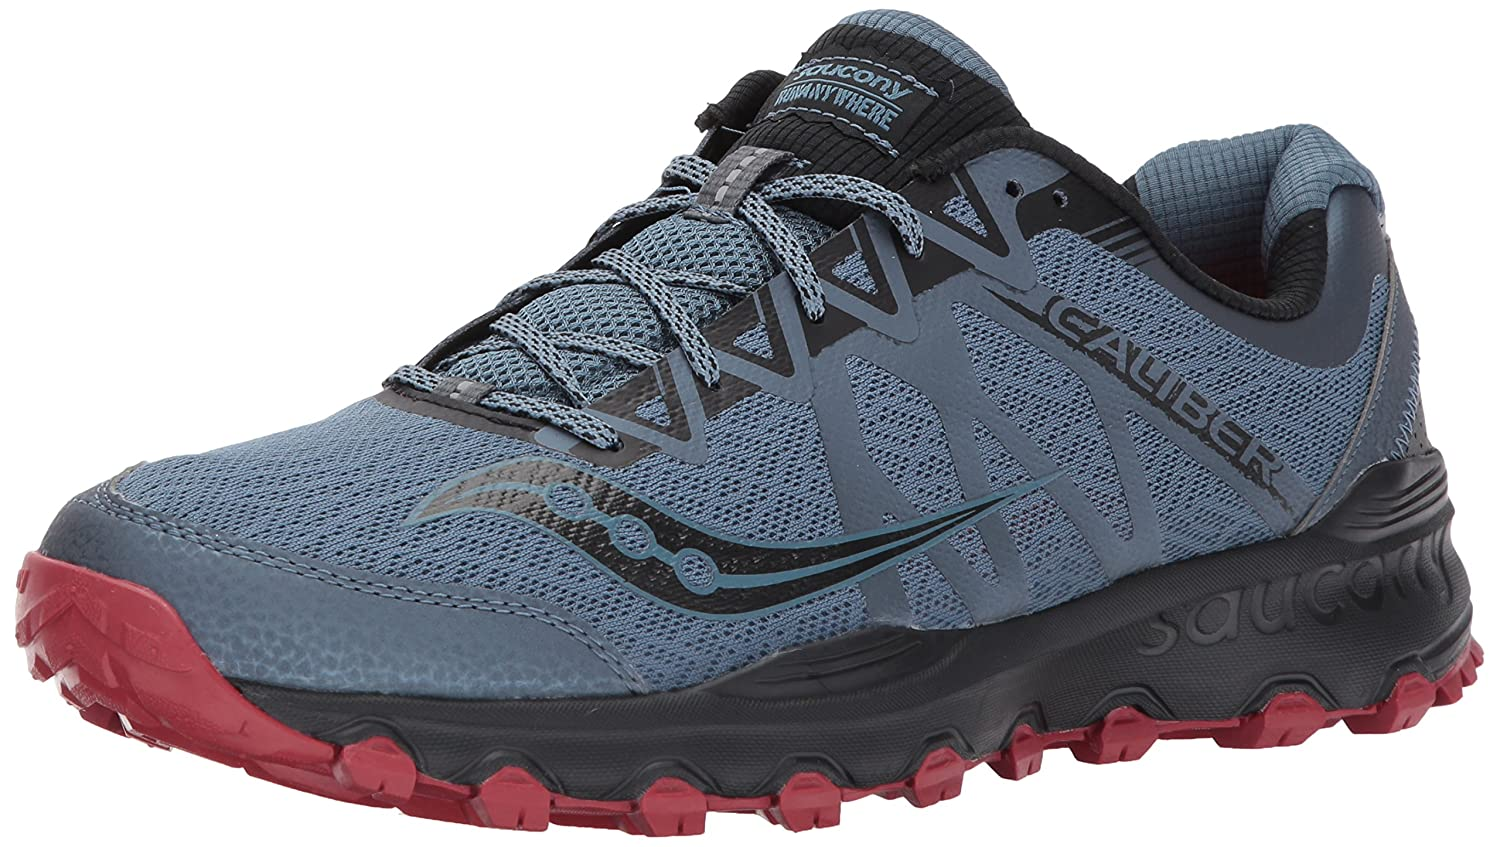 Saucony Men's Grid Caliber TR Trail Runner B01MY0VPBW 8.5 D(M) US|Grey Red